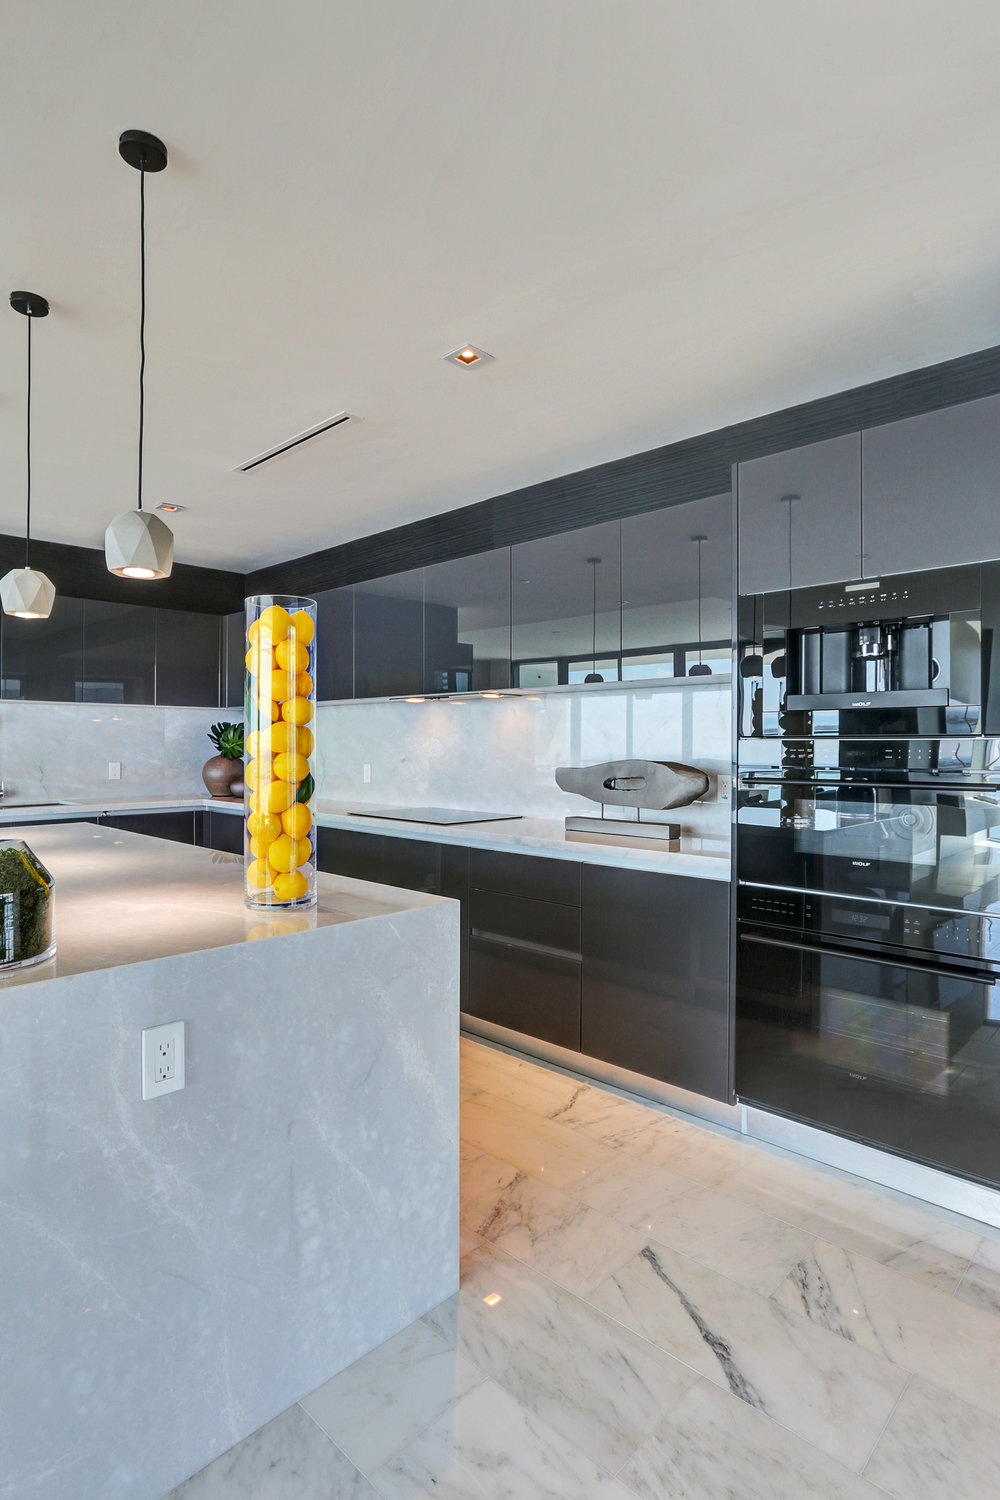 echo brickell model unit #2901 - 49.jpg